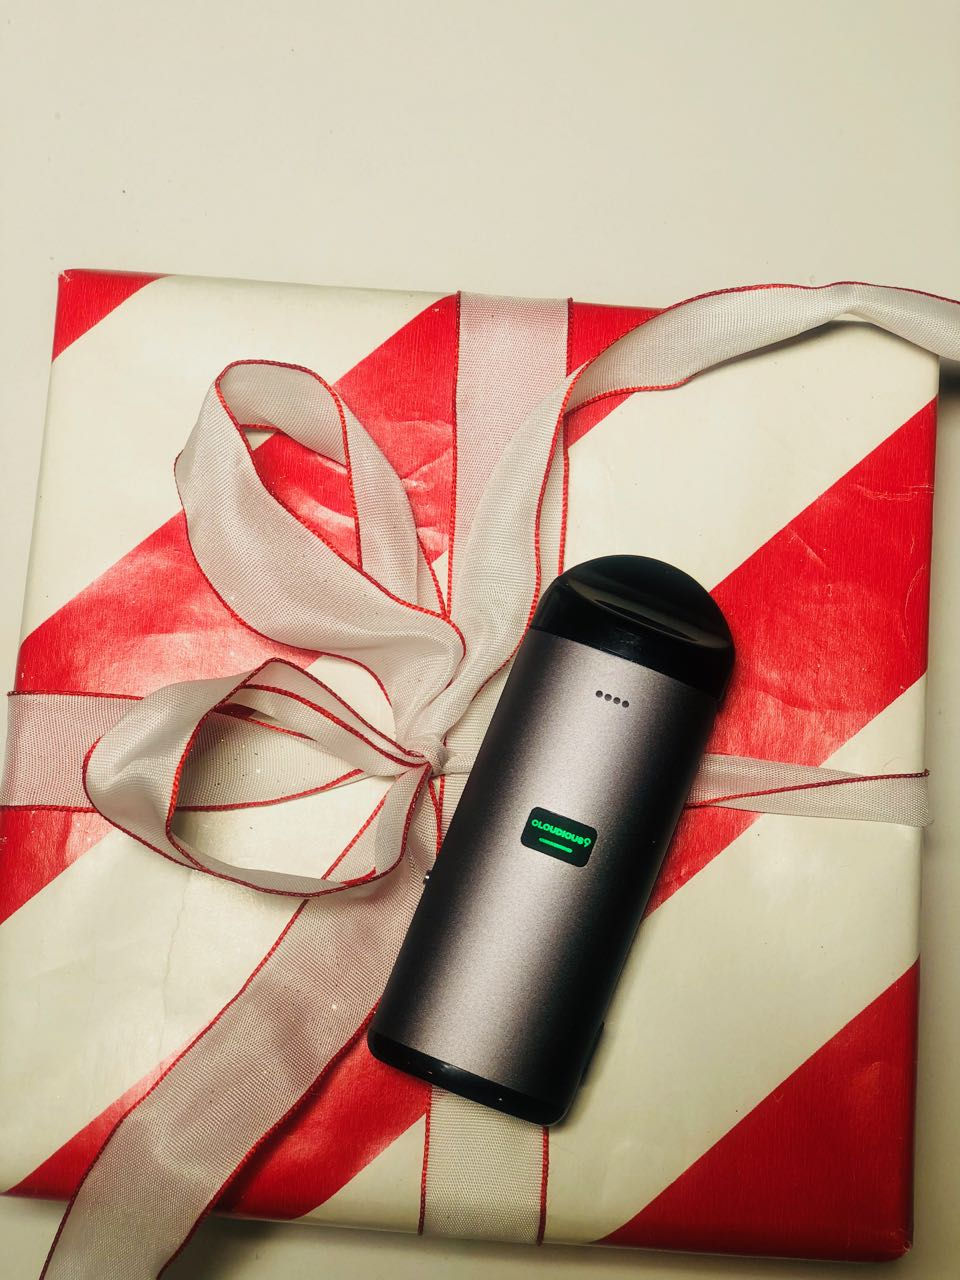 We Have The Perfect Holiday Gifts For The Cannabis Enthusiasts In Your Life